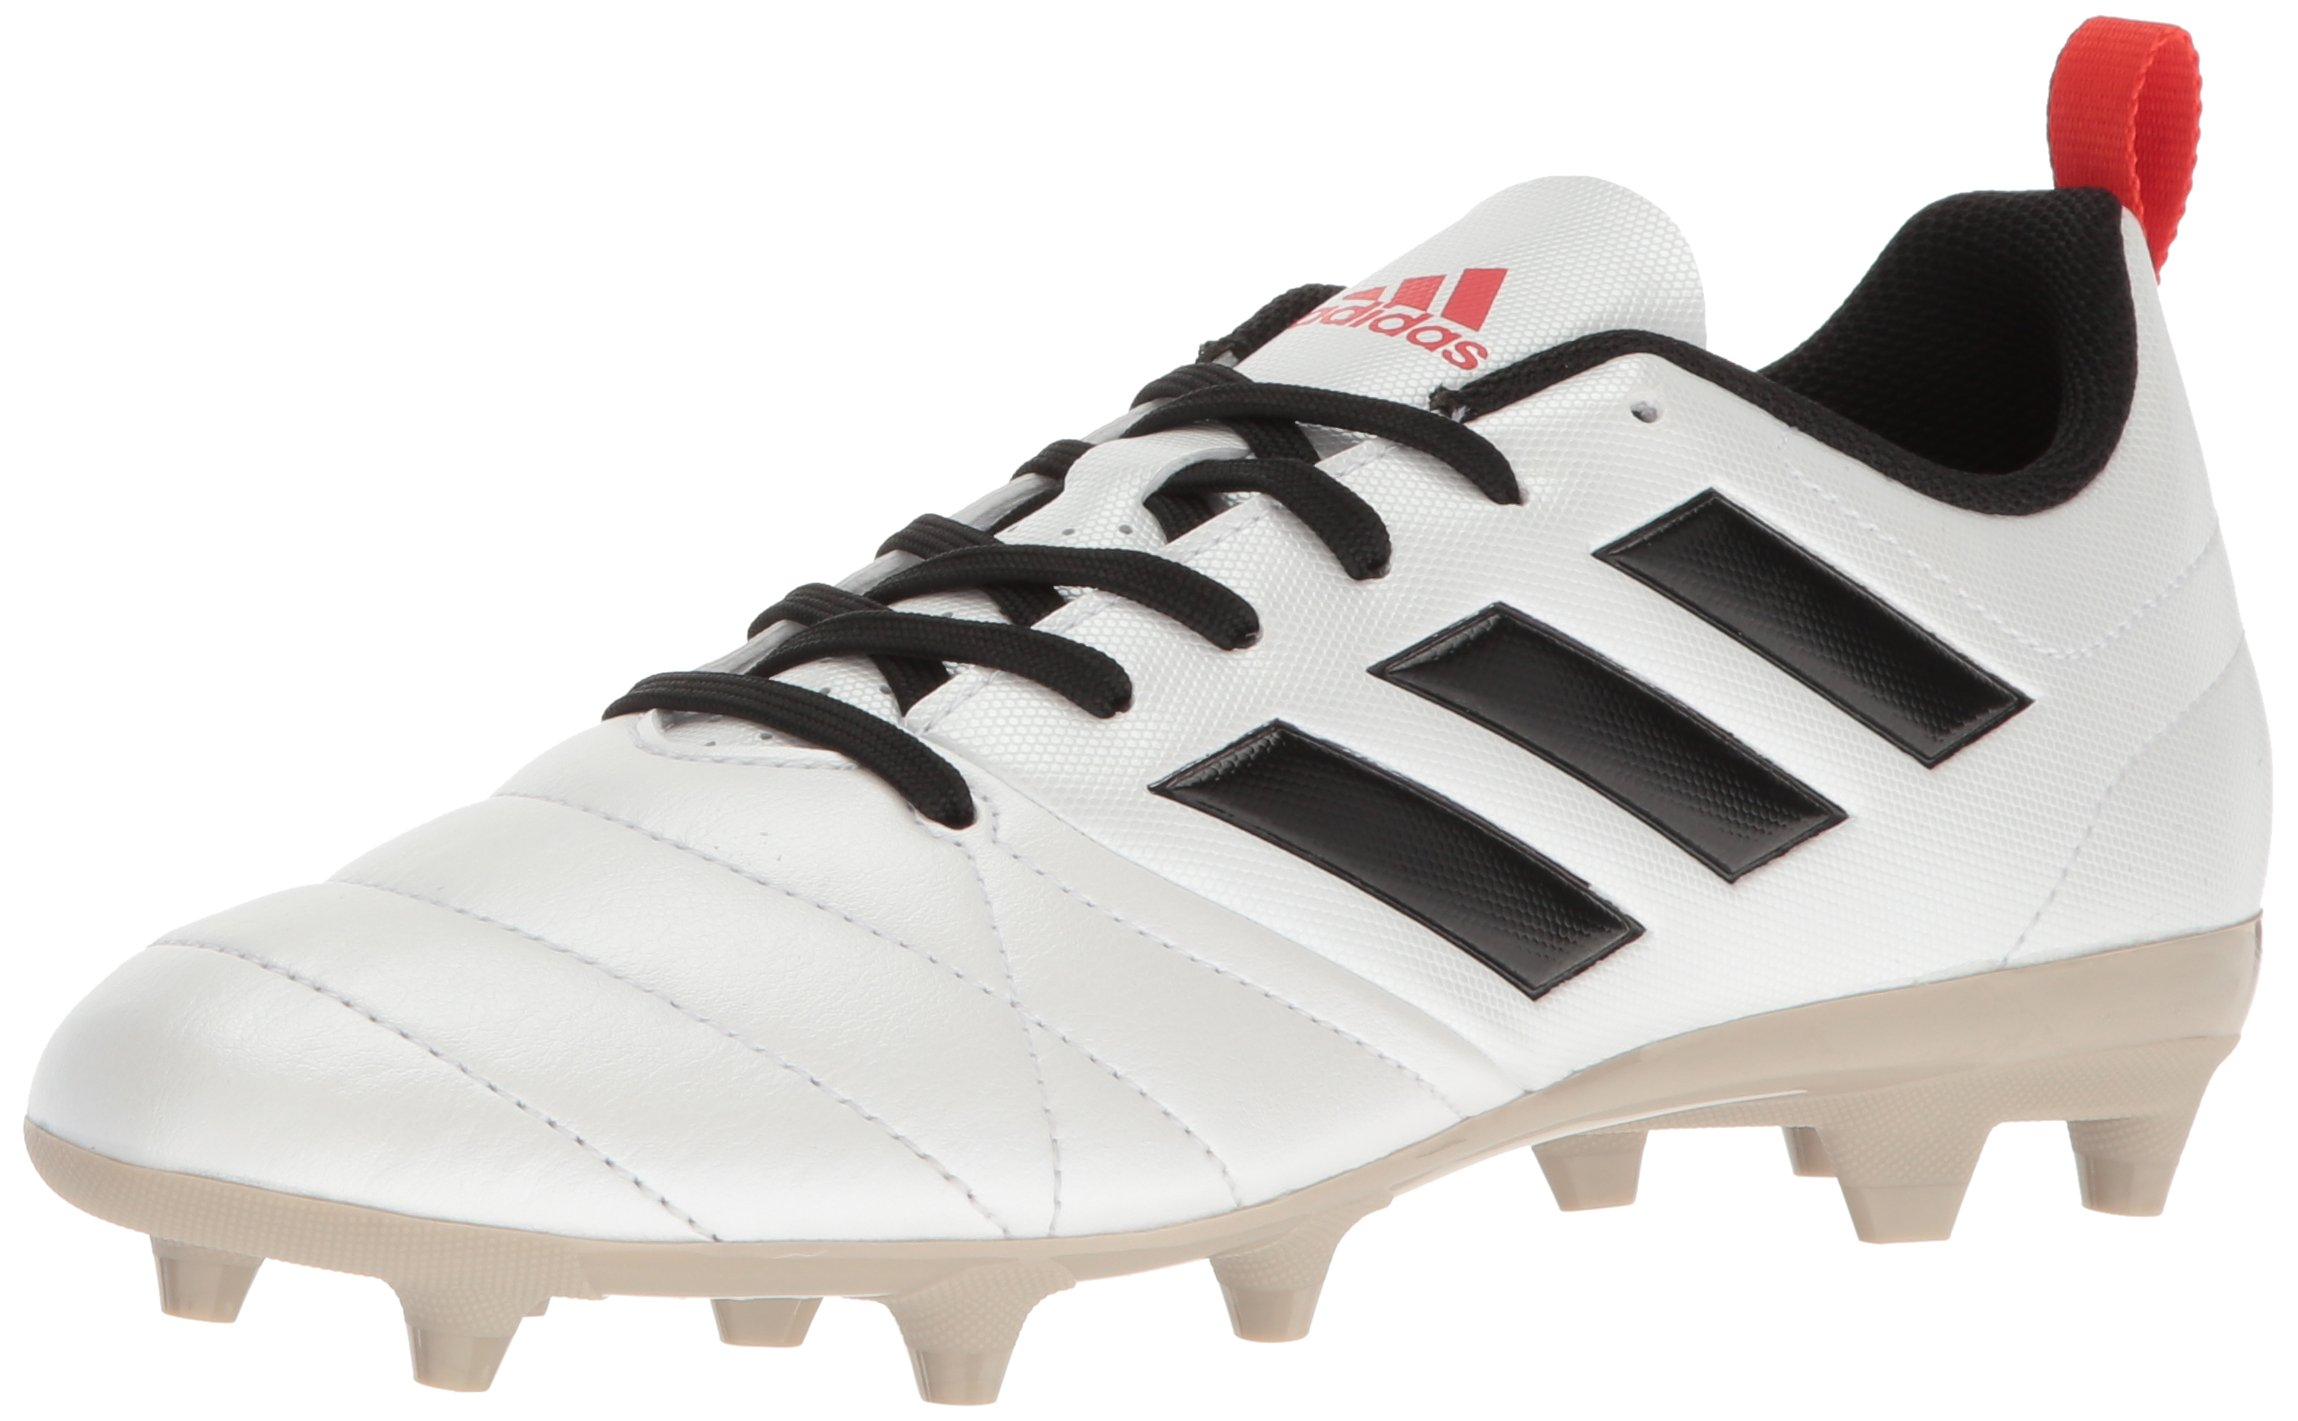 adidas Women's ACE 17.4 FG W Soccer Shoe, White/Black/Core Red S, 6.5 M US by adidas